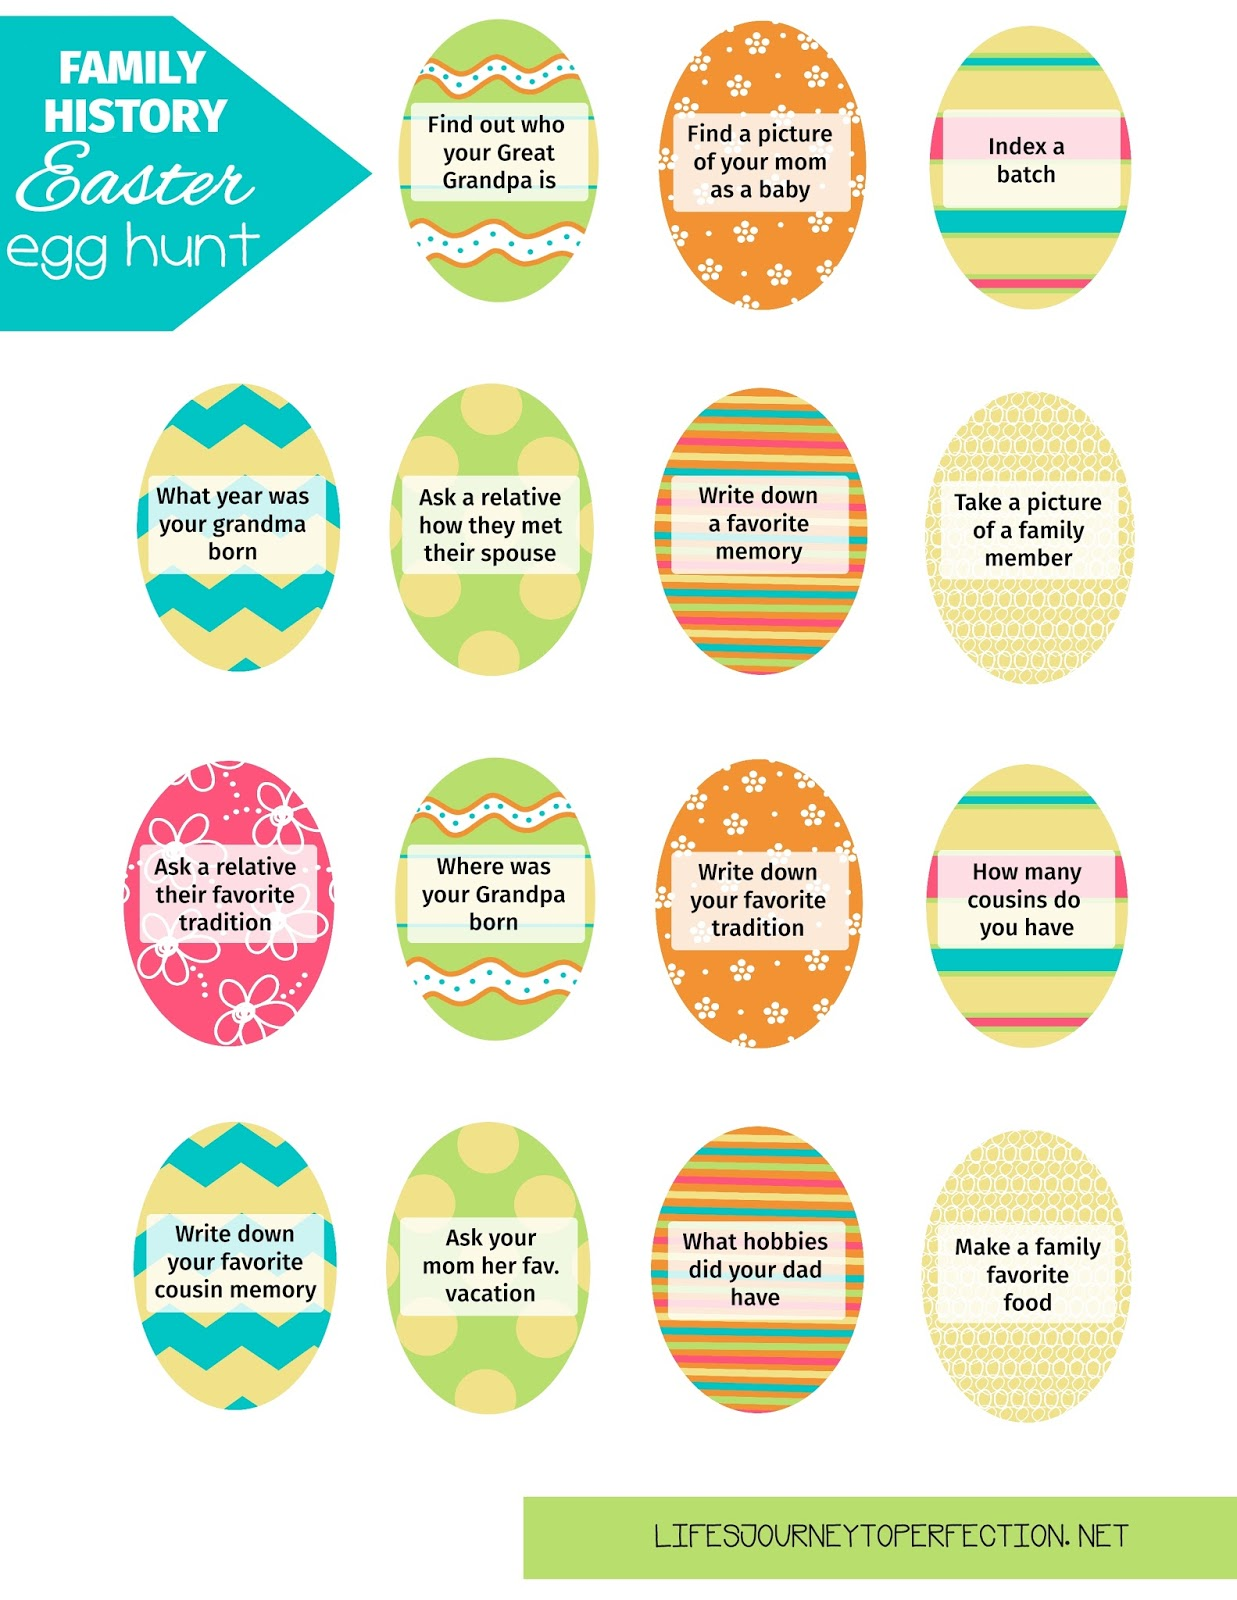 Life S Journey To Perfection 2 Great Easter Hunt Ideas